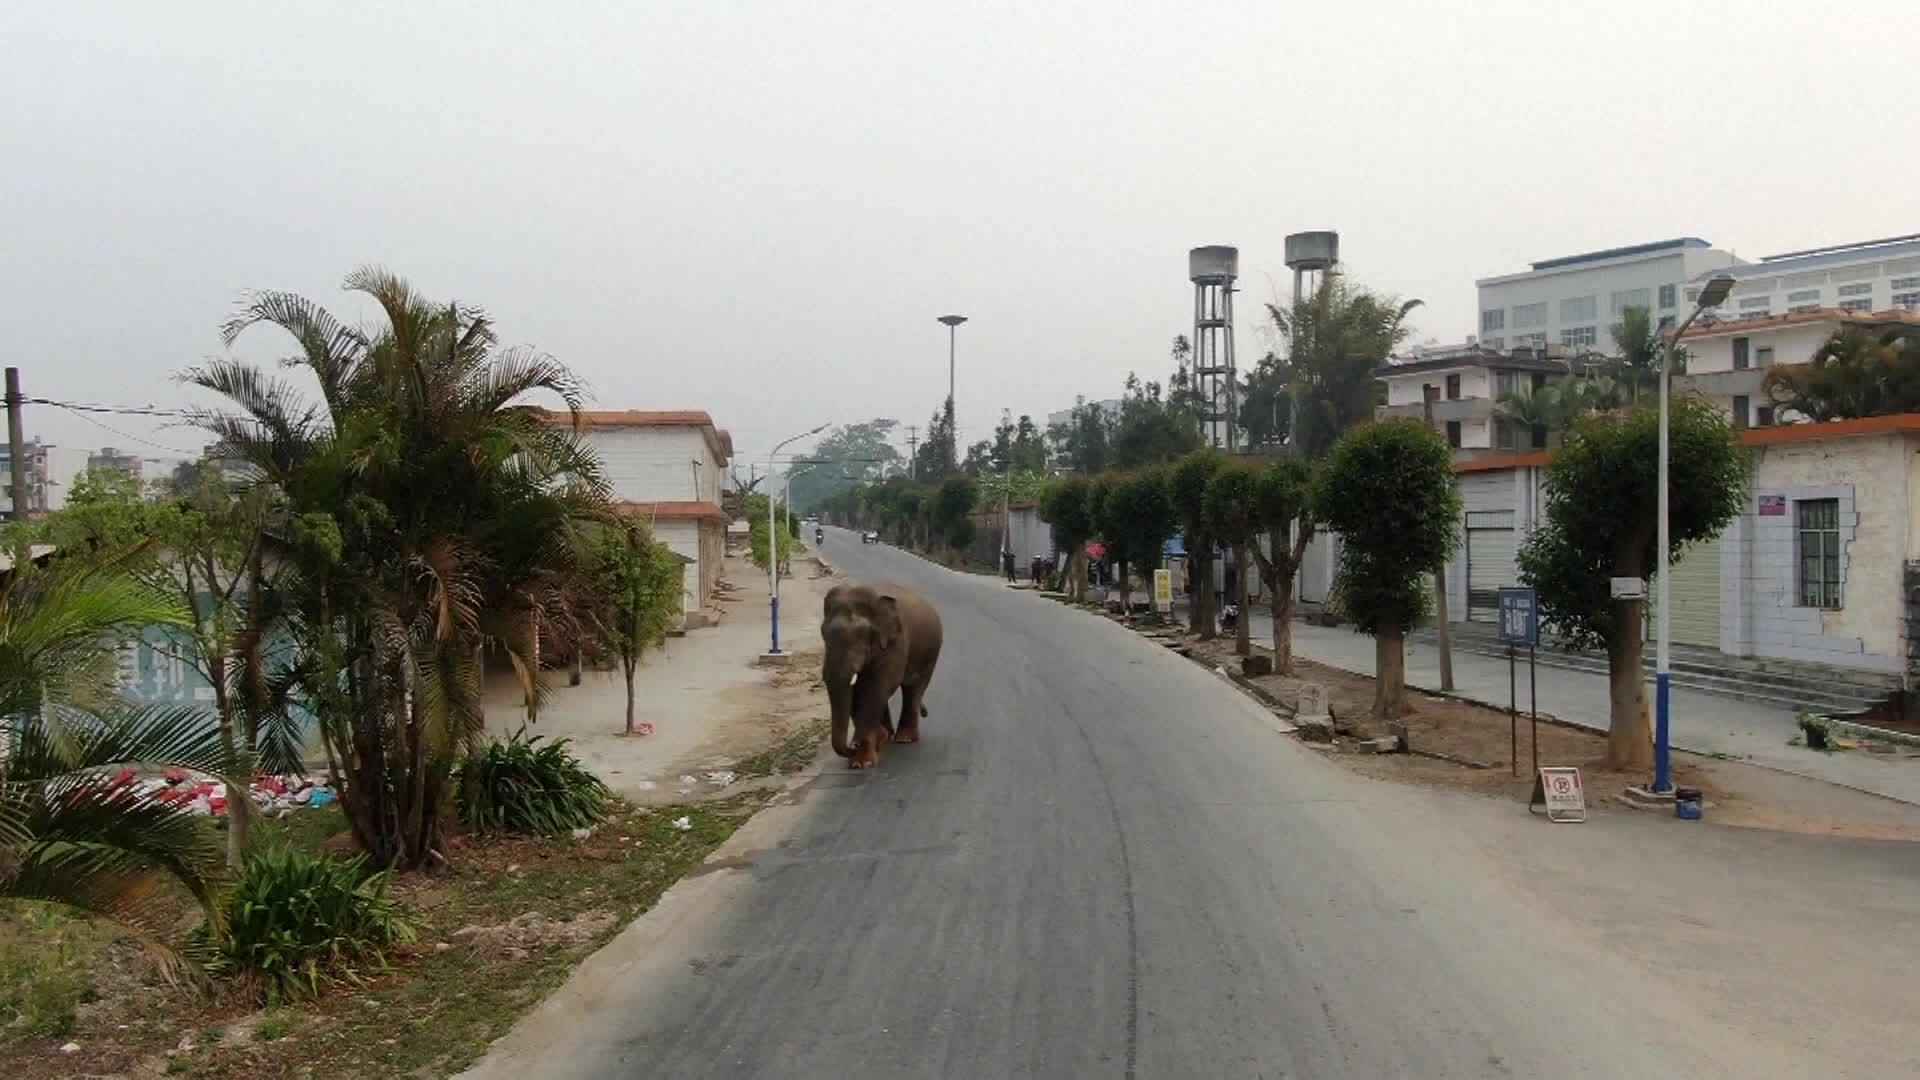 Video: Elephant loose in streets